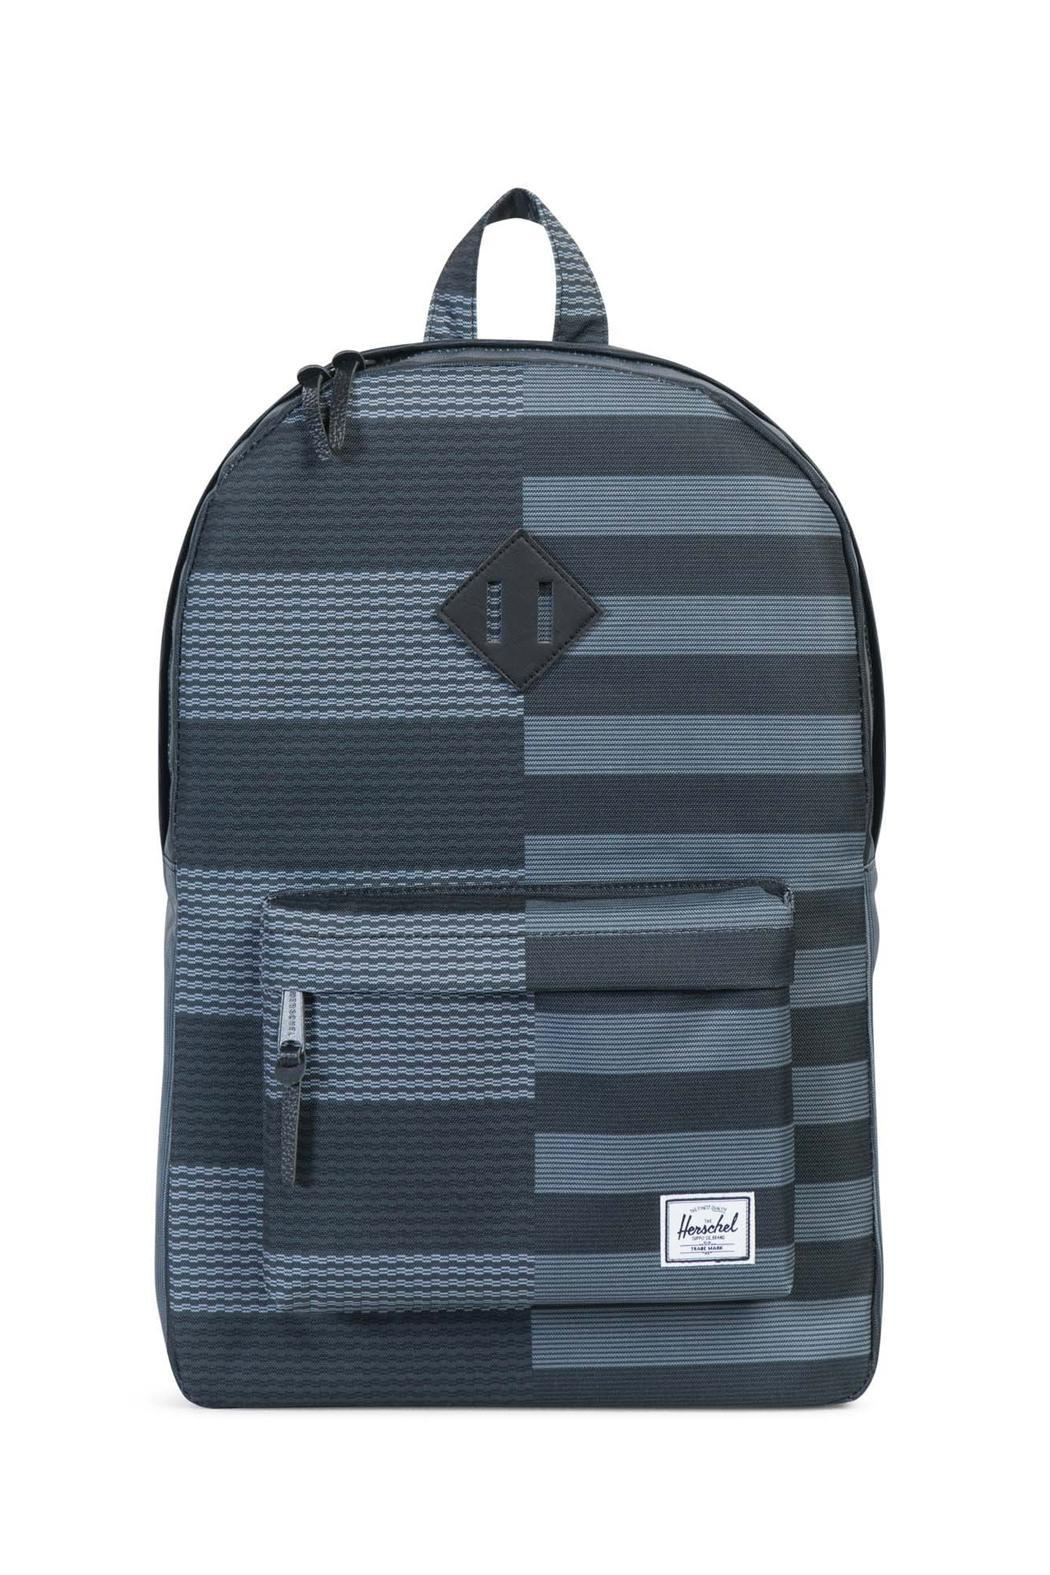 Herschel Supply Co. Herschel Heritage Backpack - Front Cropped Image